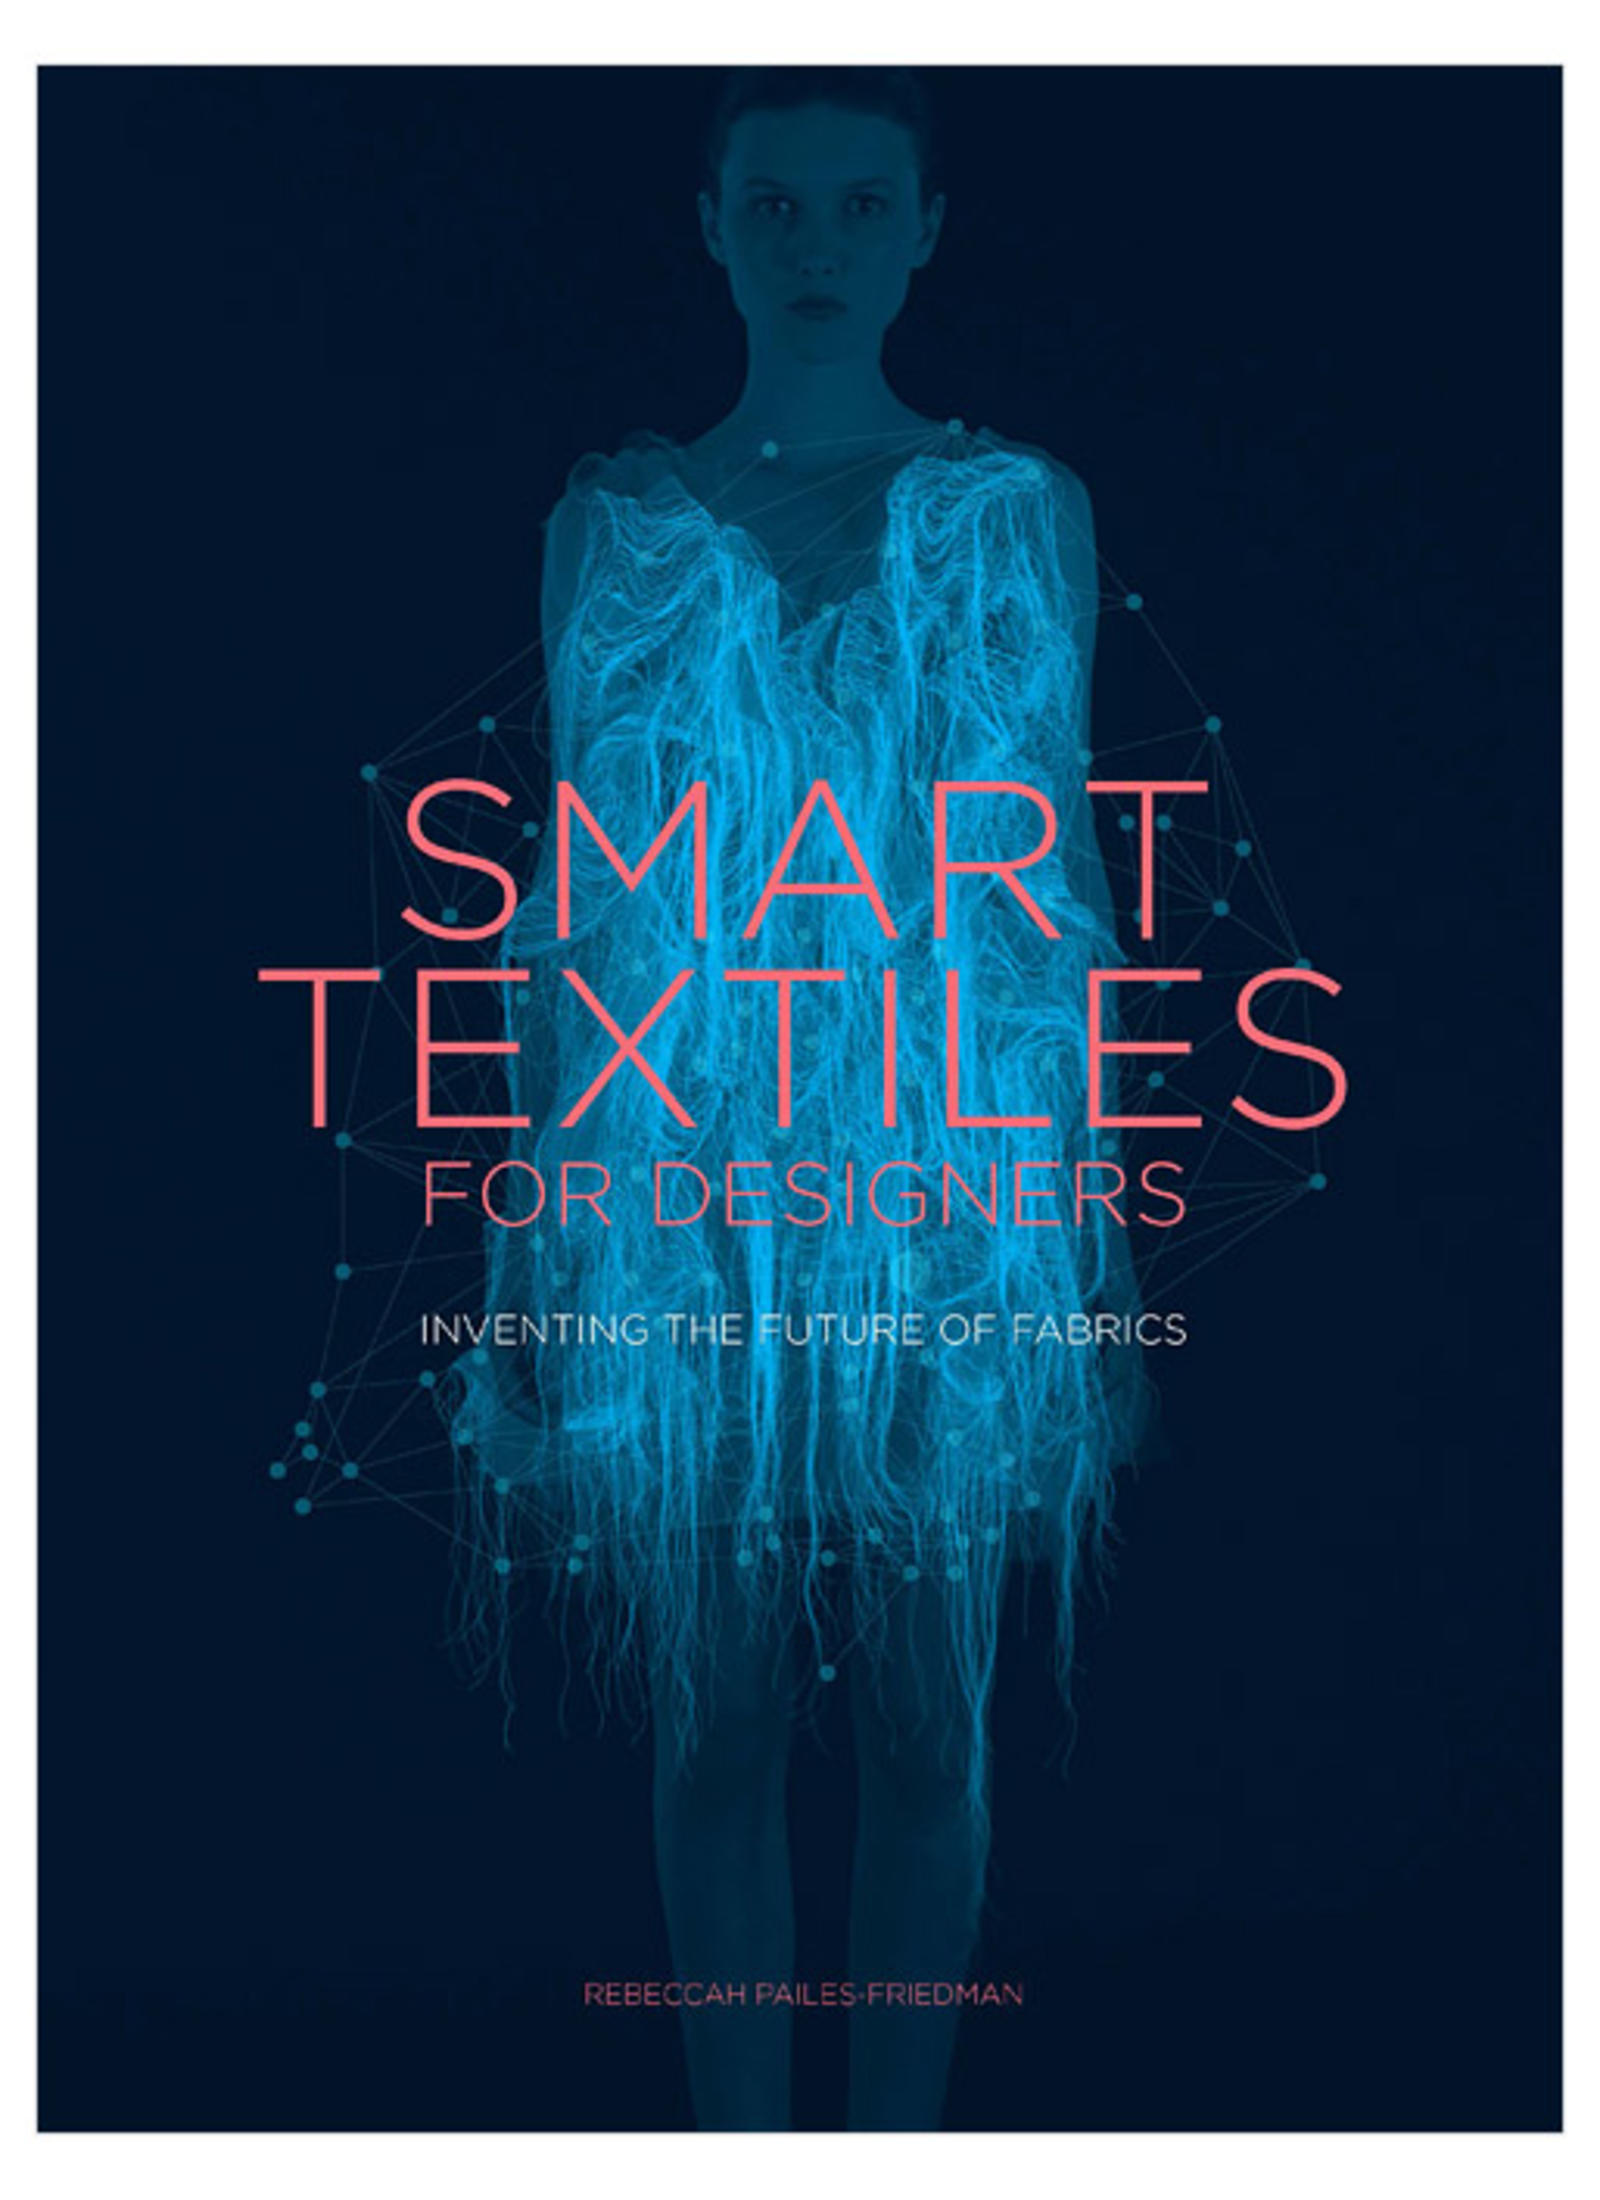 Smart Textiles for Designers: Inventing the Future of Fabric